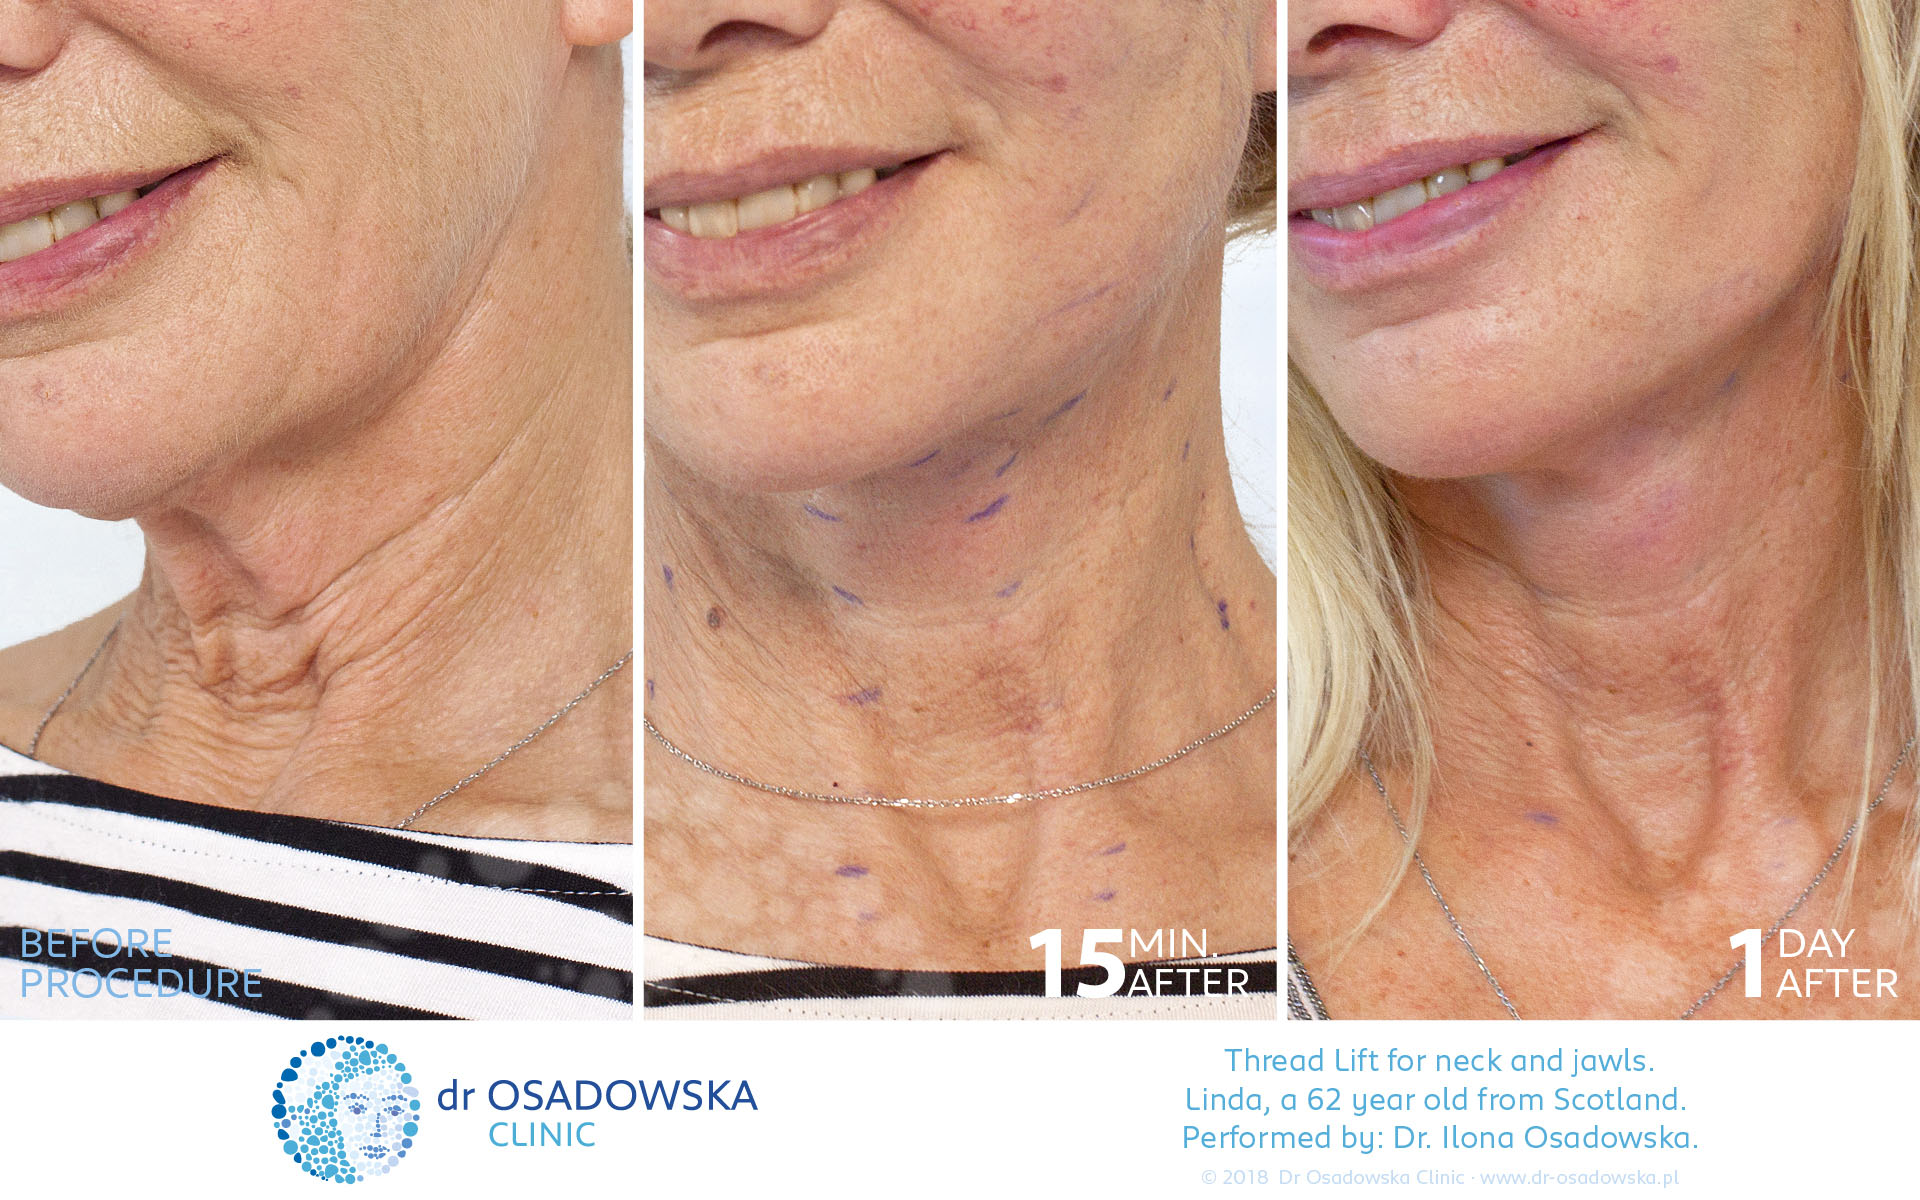 Real photos Neck and jawls - Thread Lift, Aptos - Dr